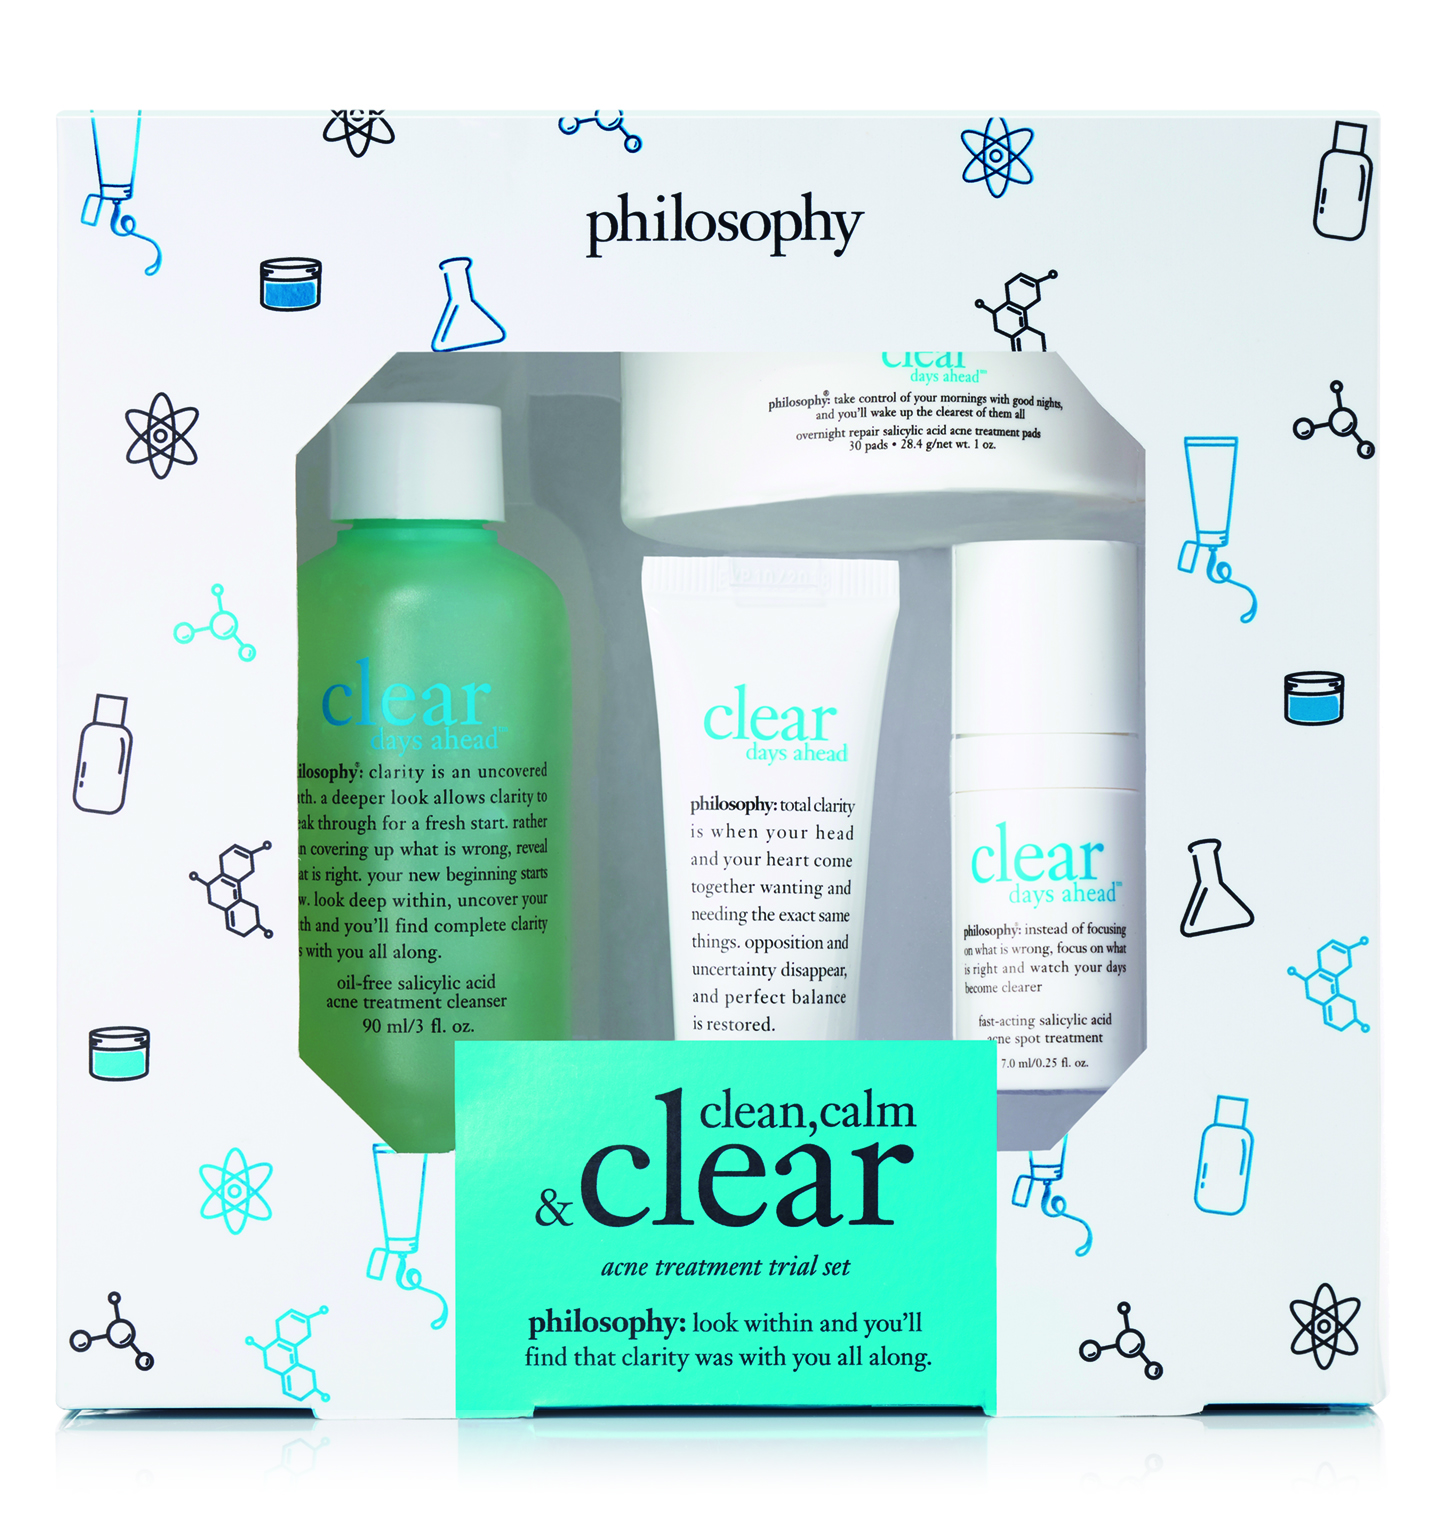 clear days ahead clear, calm, acne treatment set